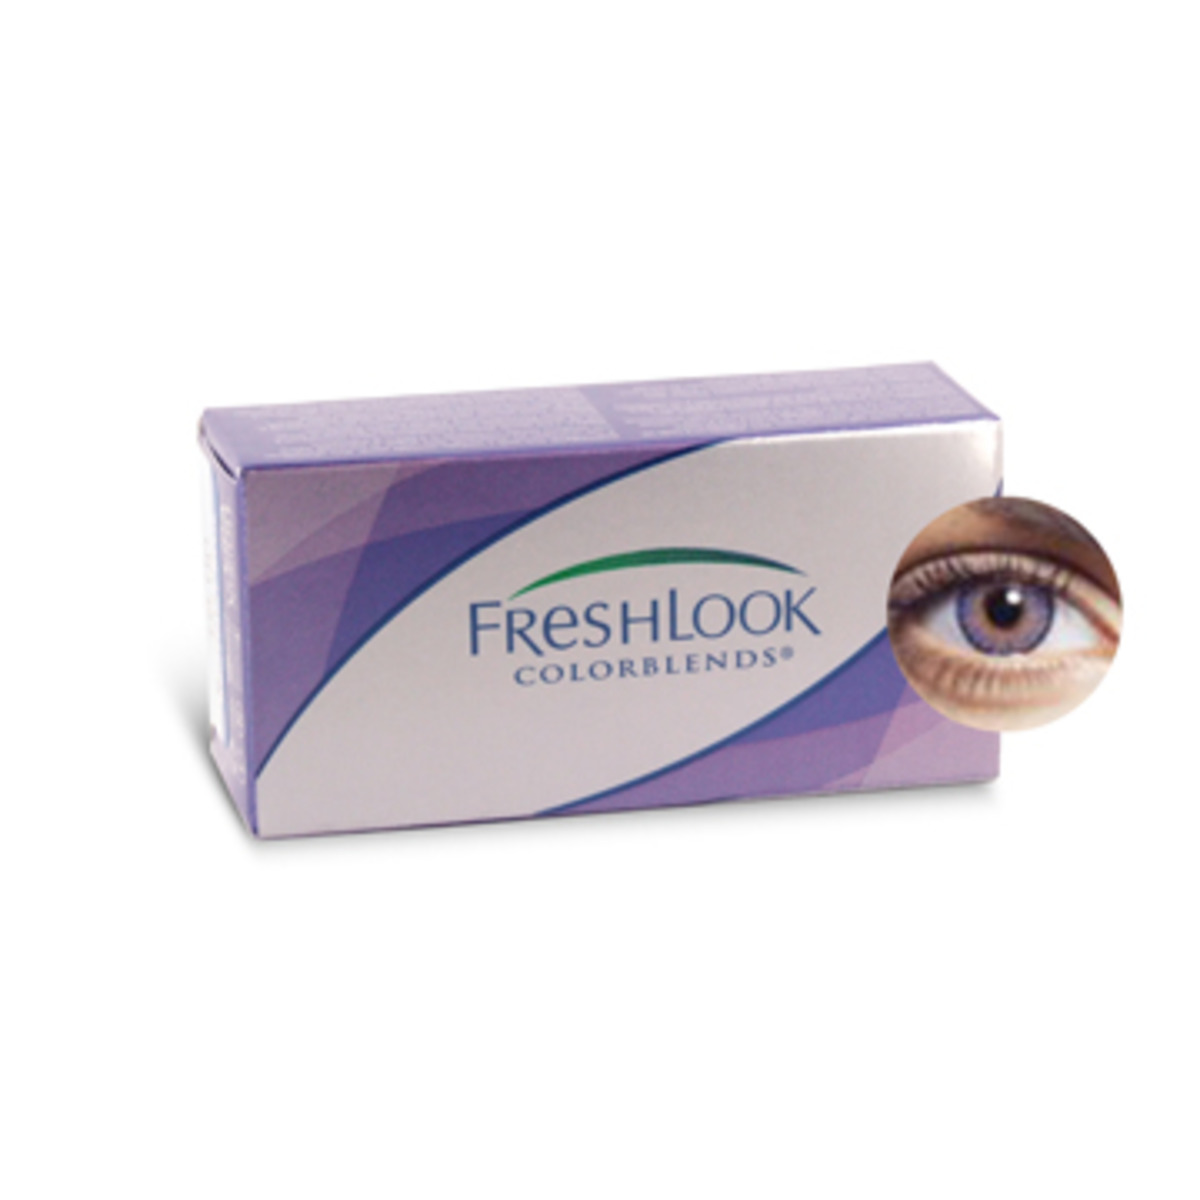 Freshlook Colorblends Blue (Bleu Azur)